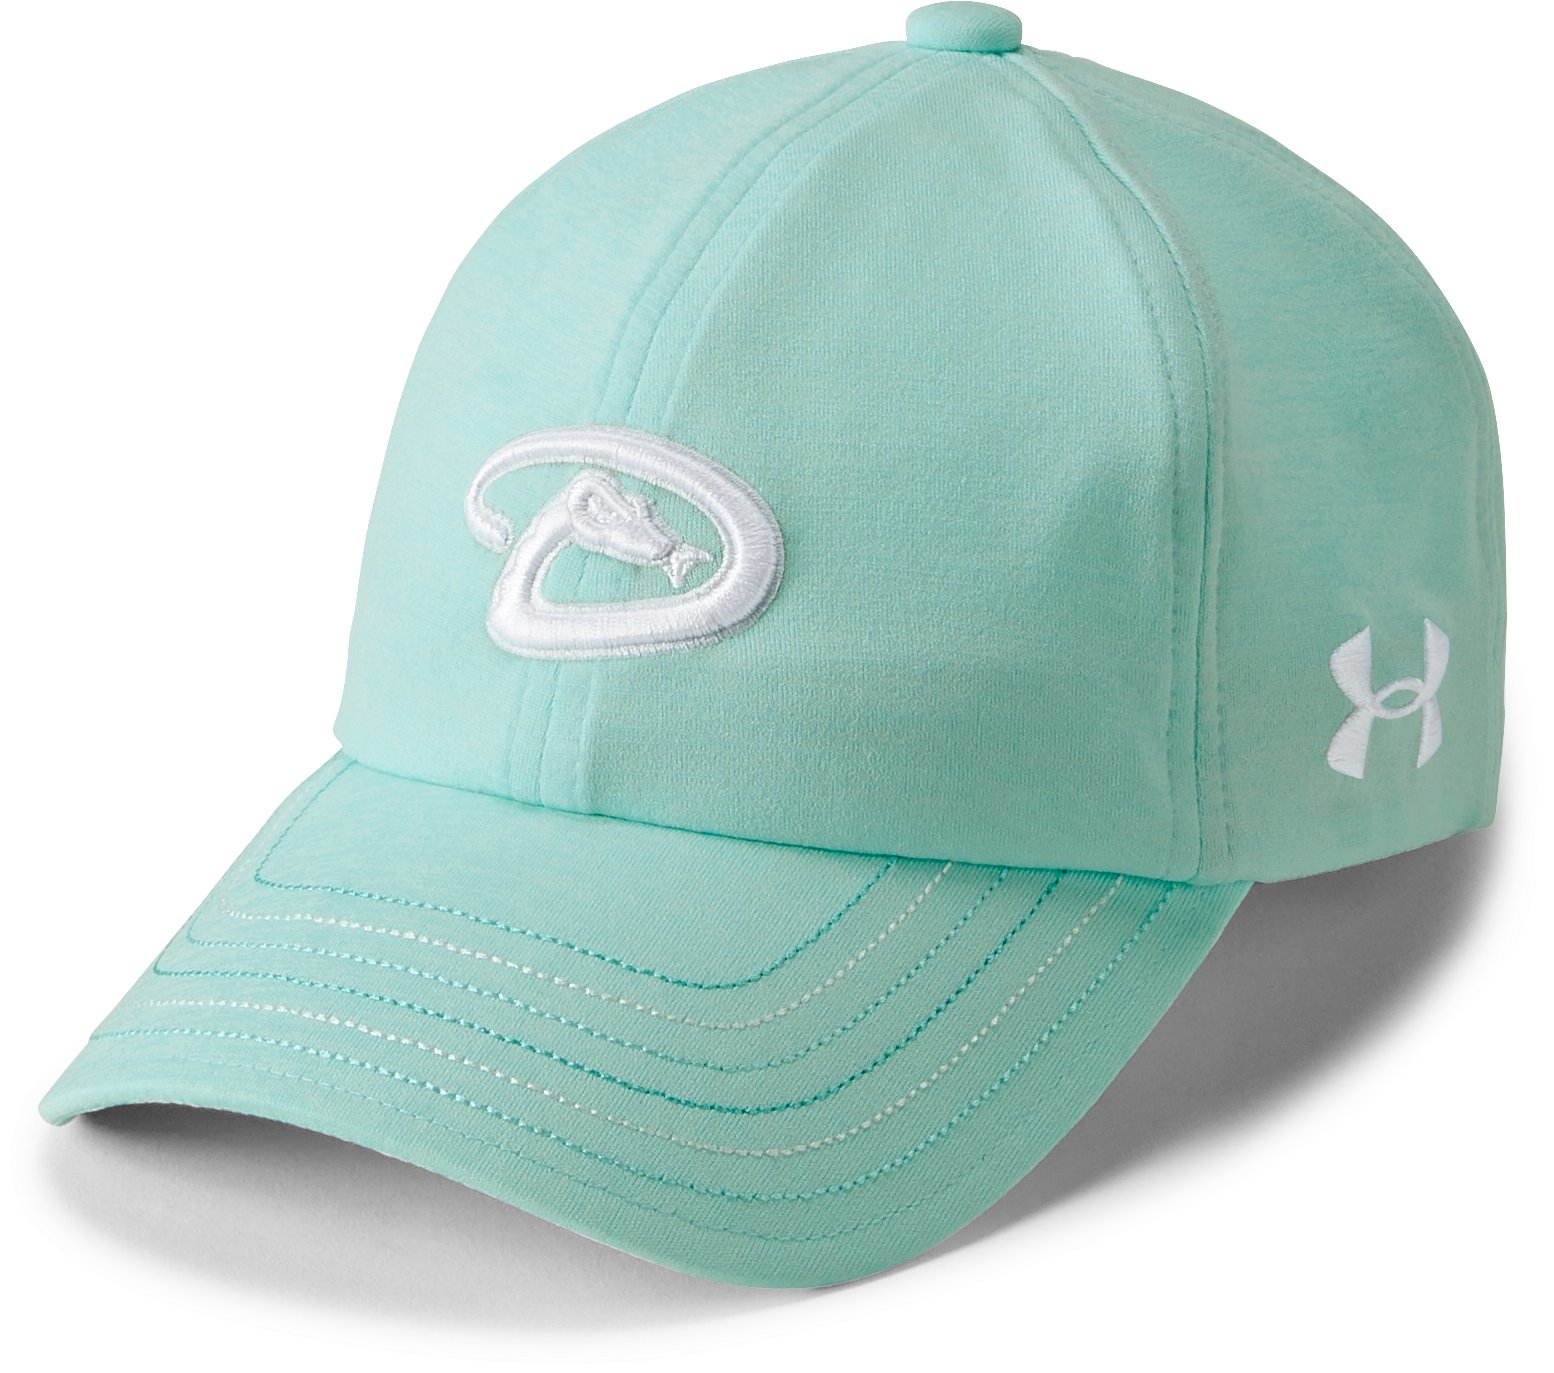 Girls' MLB Renegade Twist Cap 27 Colors $17.50